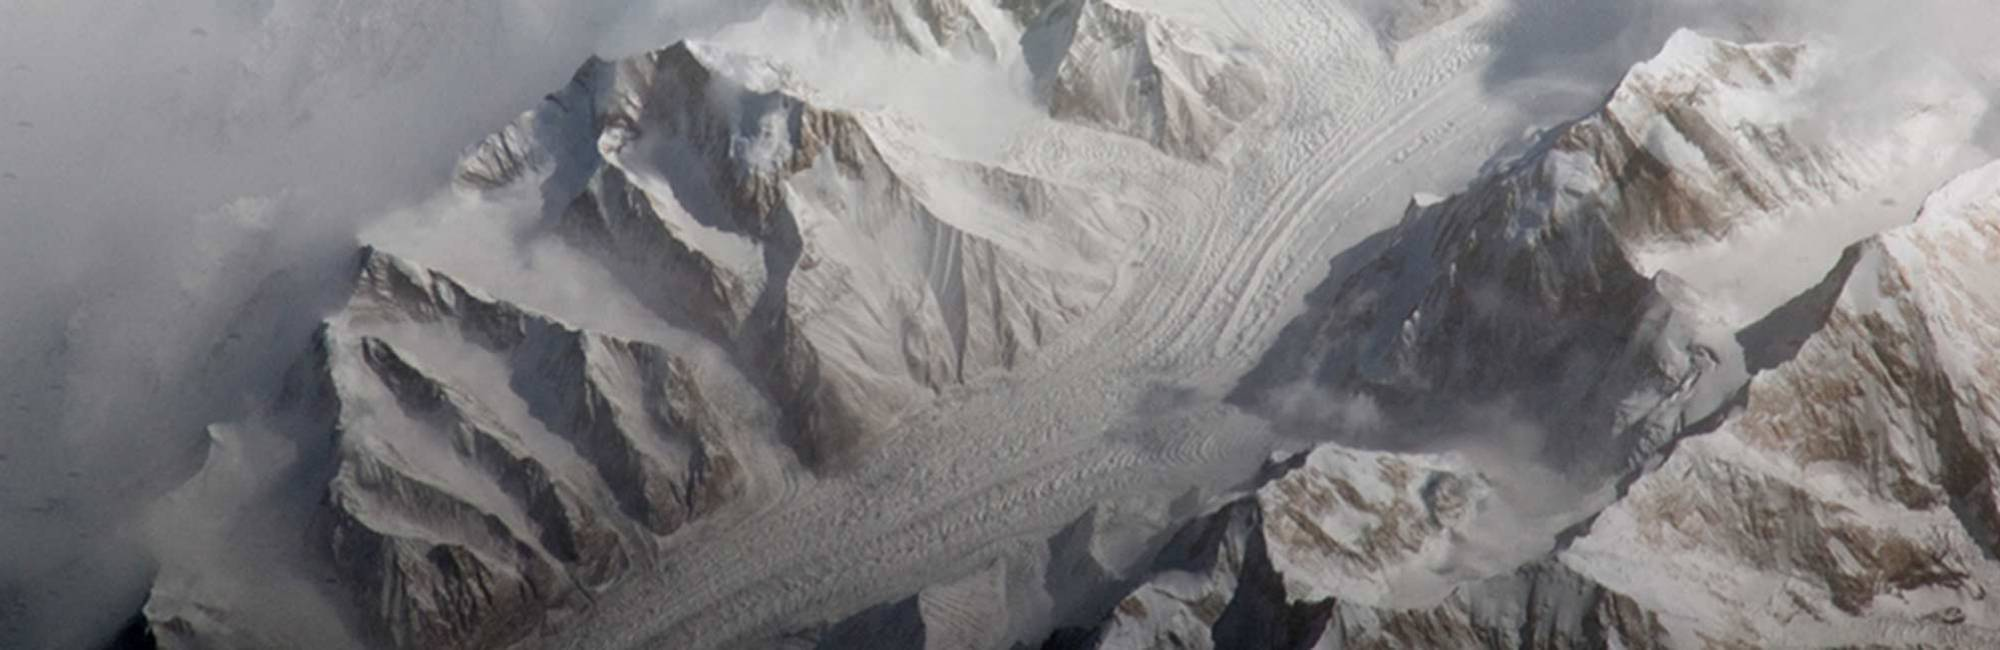 China Glacier | ESOC CIRES